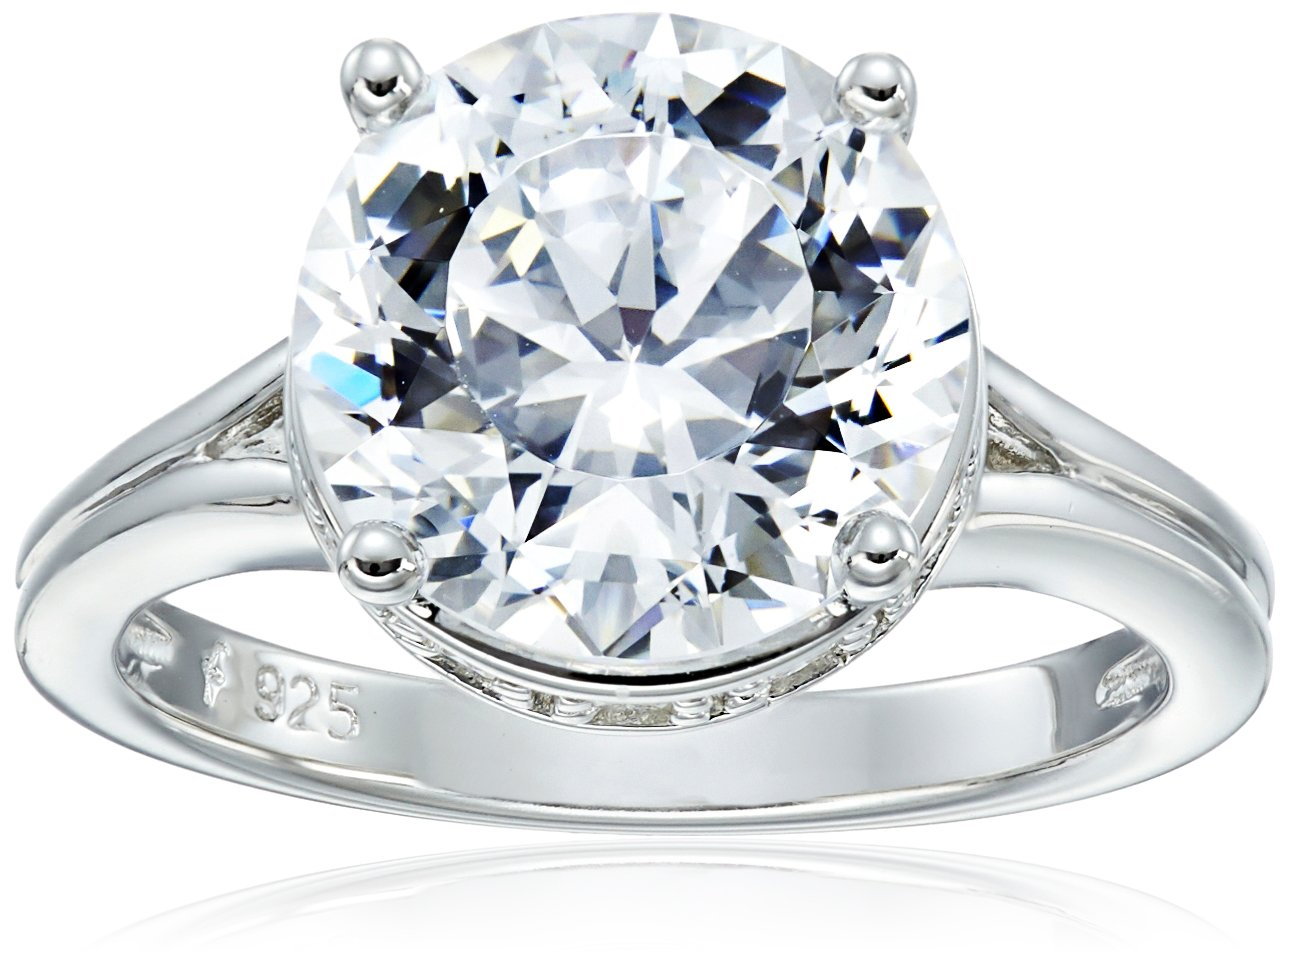 Platinum Plated 925 Sterling Silver''100 Facets Collection'' Solitaire AAA Cubic Zirconia Ring, Size 5 (4 cttw)